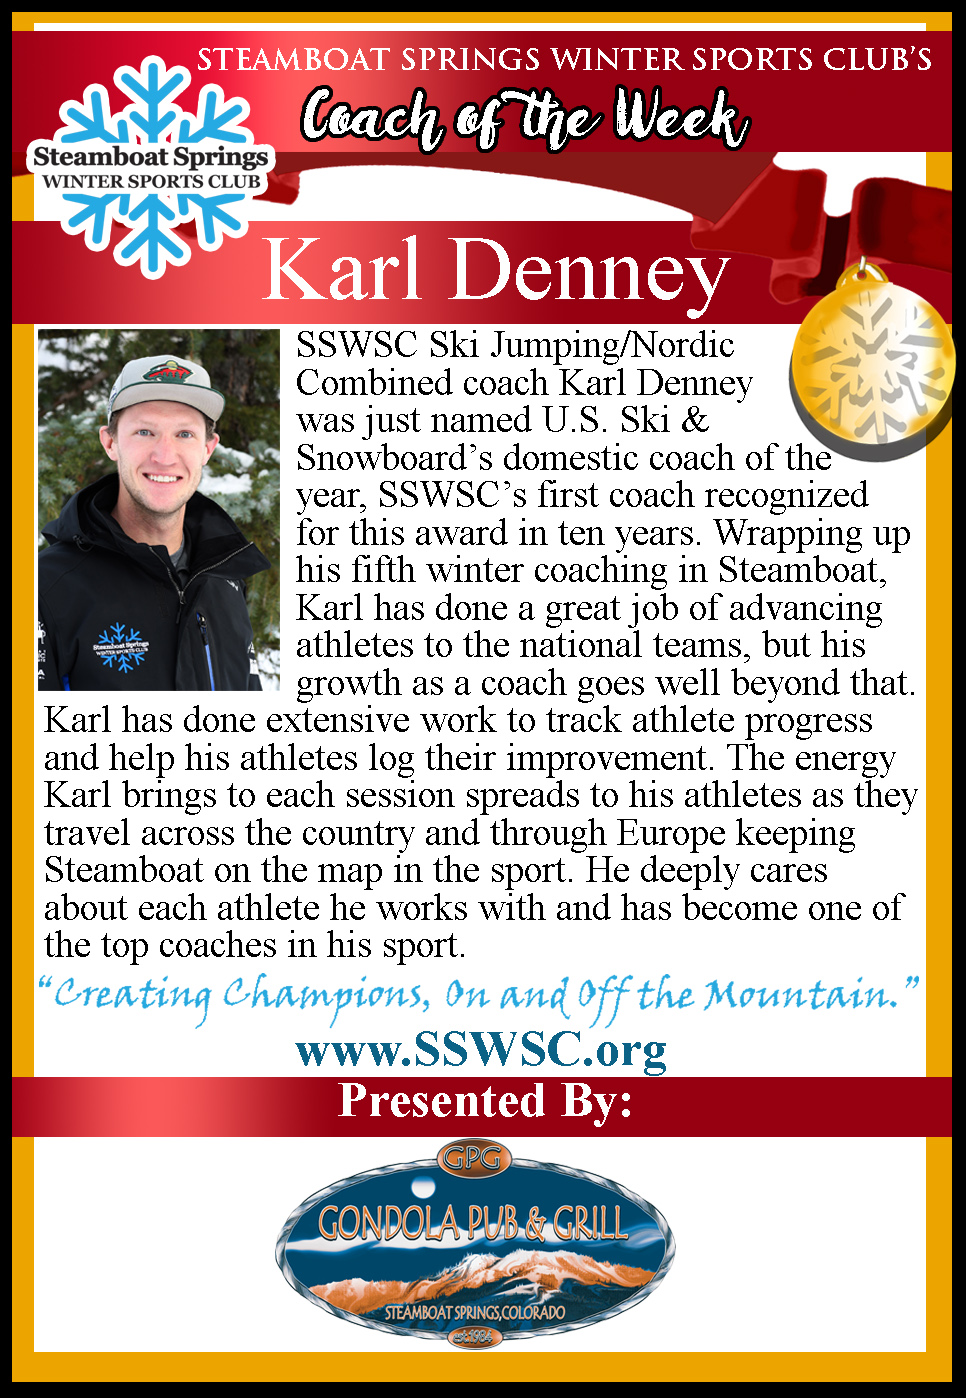 Coach of the Week, Karl Denney